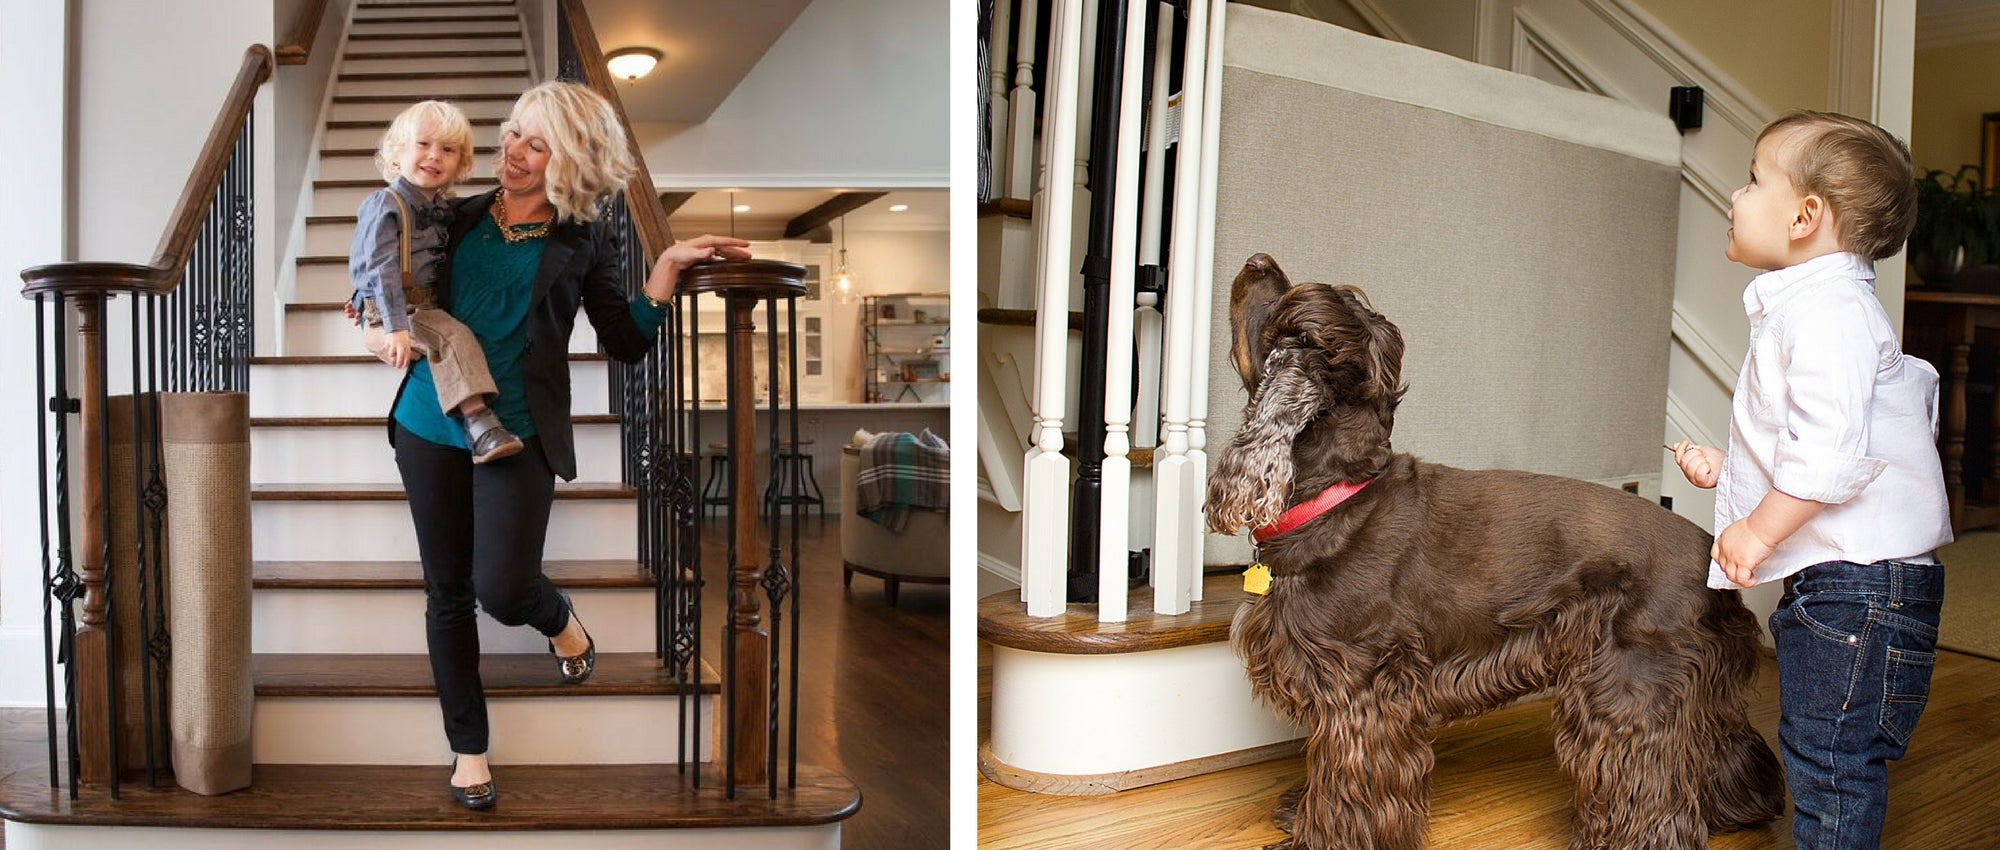 Stair Barrier | Pet U0026 Child Safety Gates For Stairs | Made In The USA